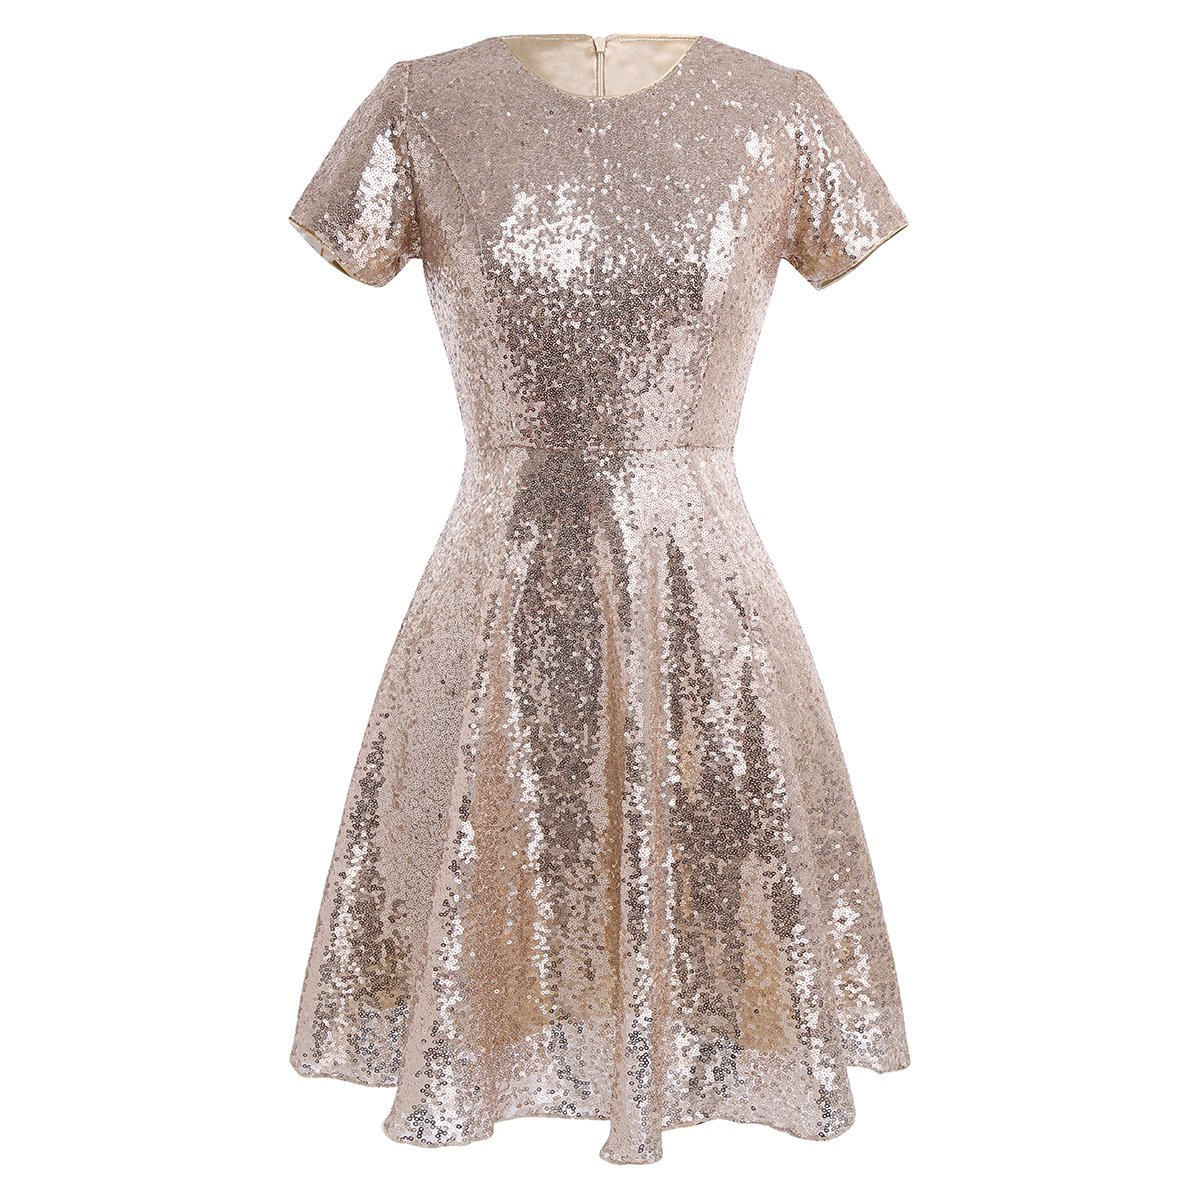 CHICTRY Womens Sequin Bridesmaid Dress Short Sleeves Evening Prom Dresses Formal Gowns: Amazon.co.uk: Clothing